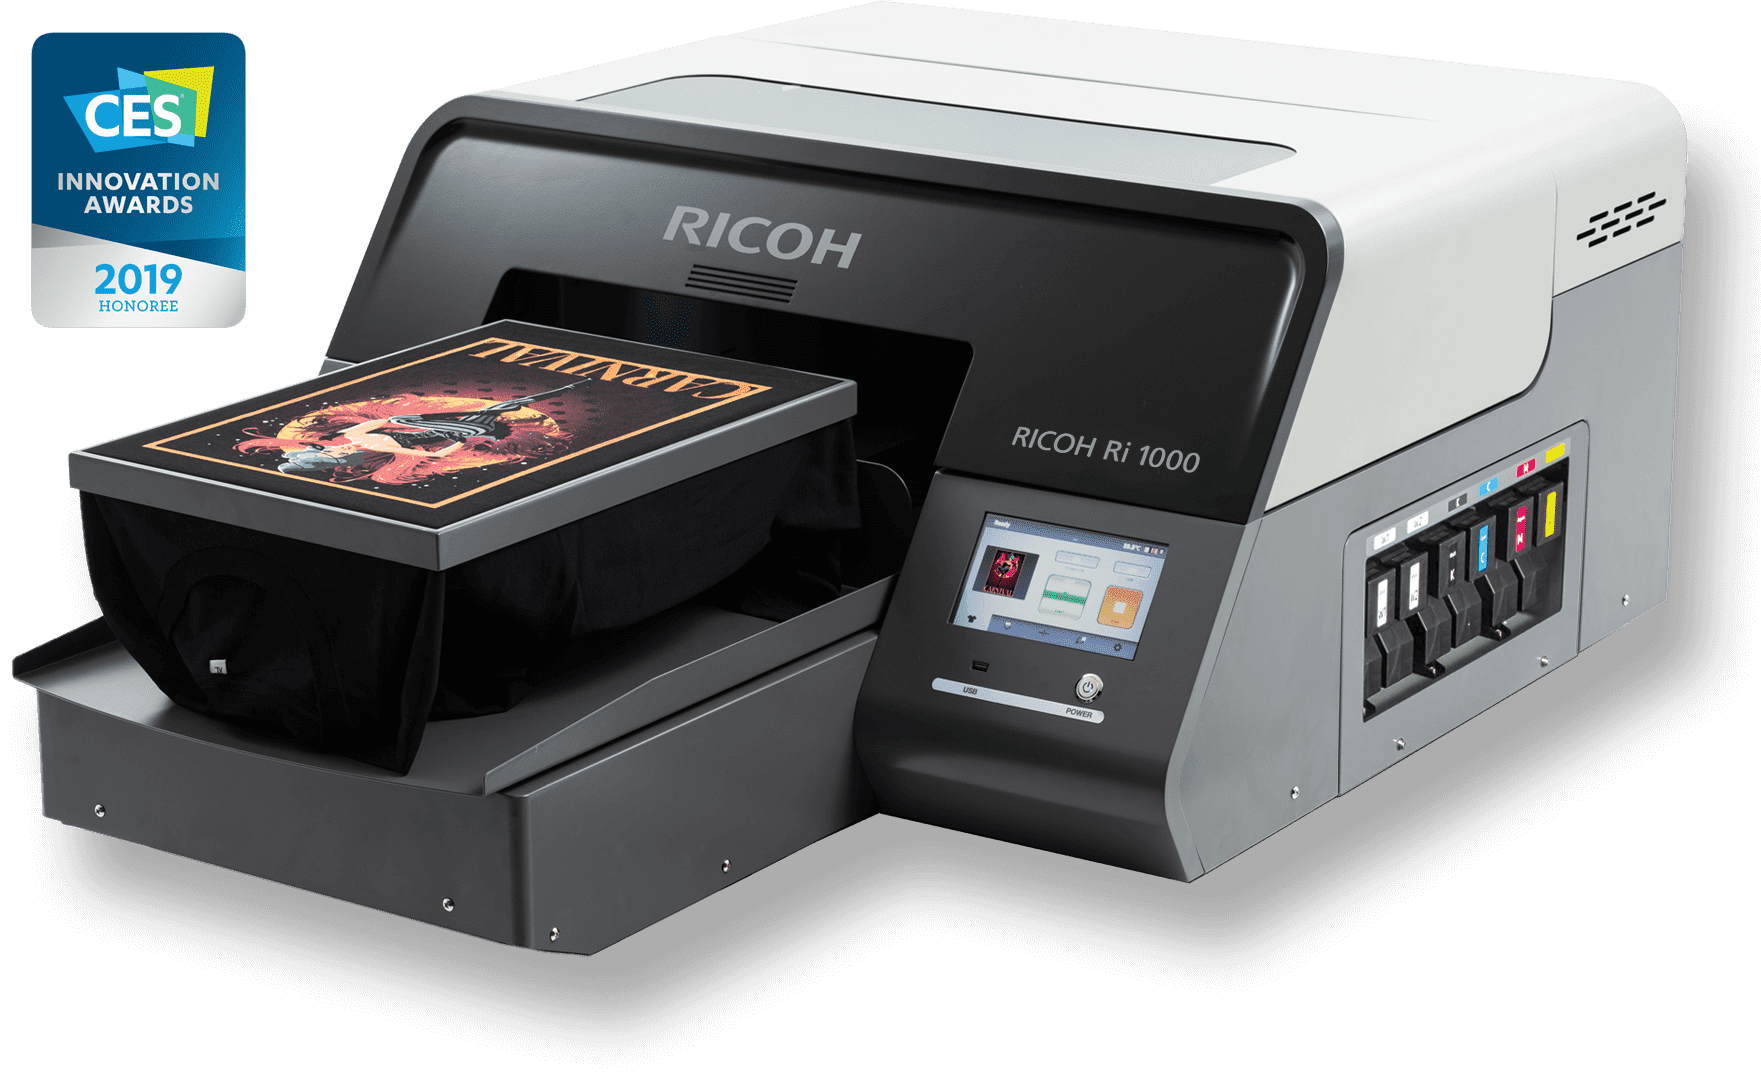 Ricoh RI 1000 Printer CES